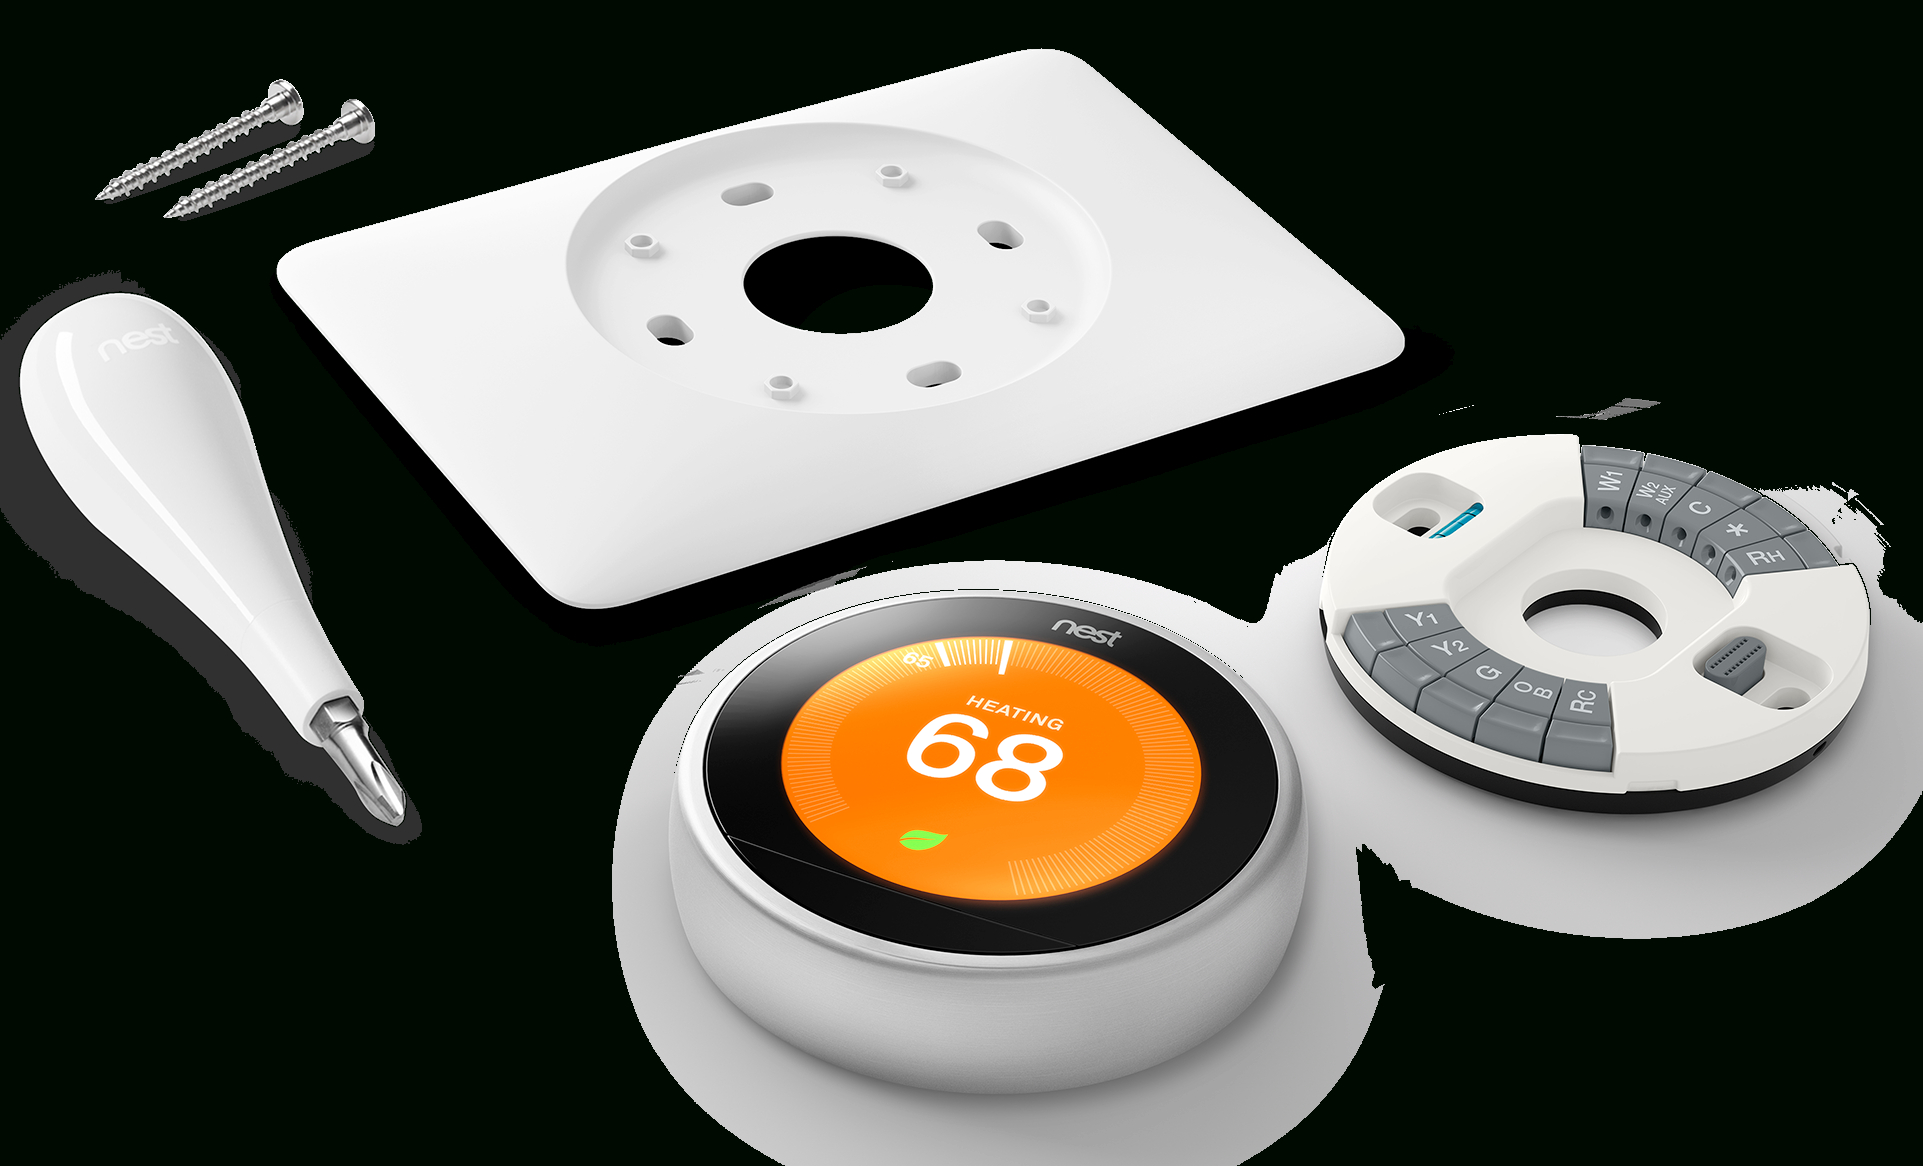 How To Install Your Nest Thermostat - Nest Thermostat Custom Wiring Diagram